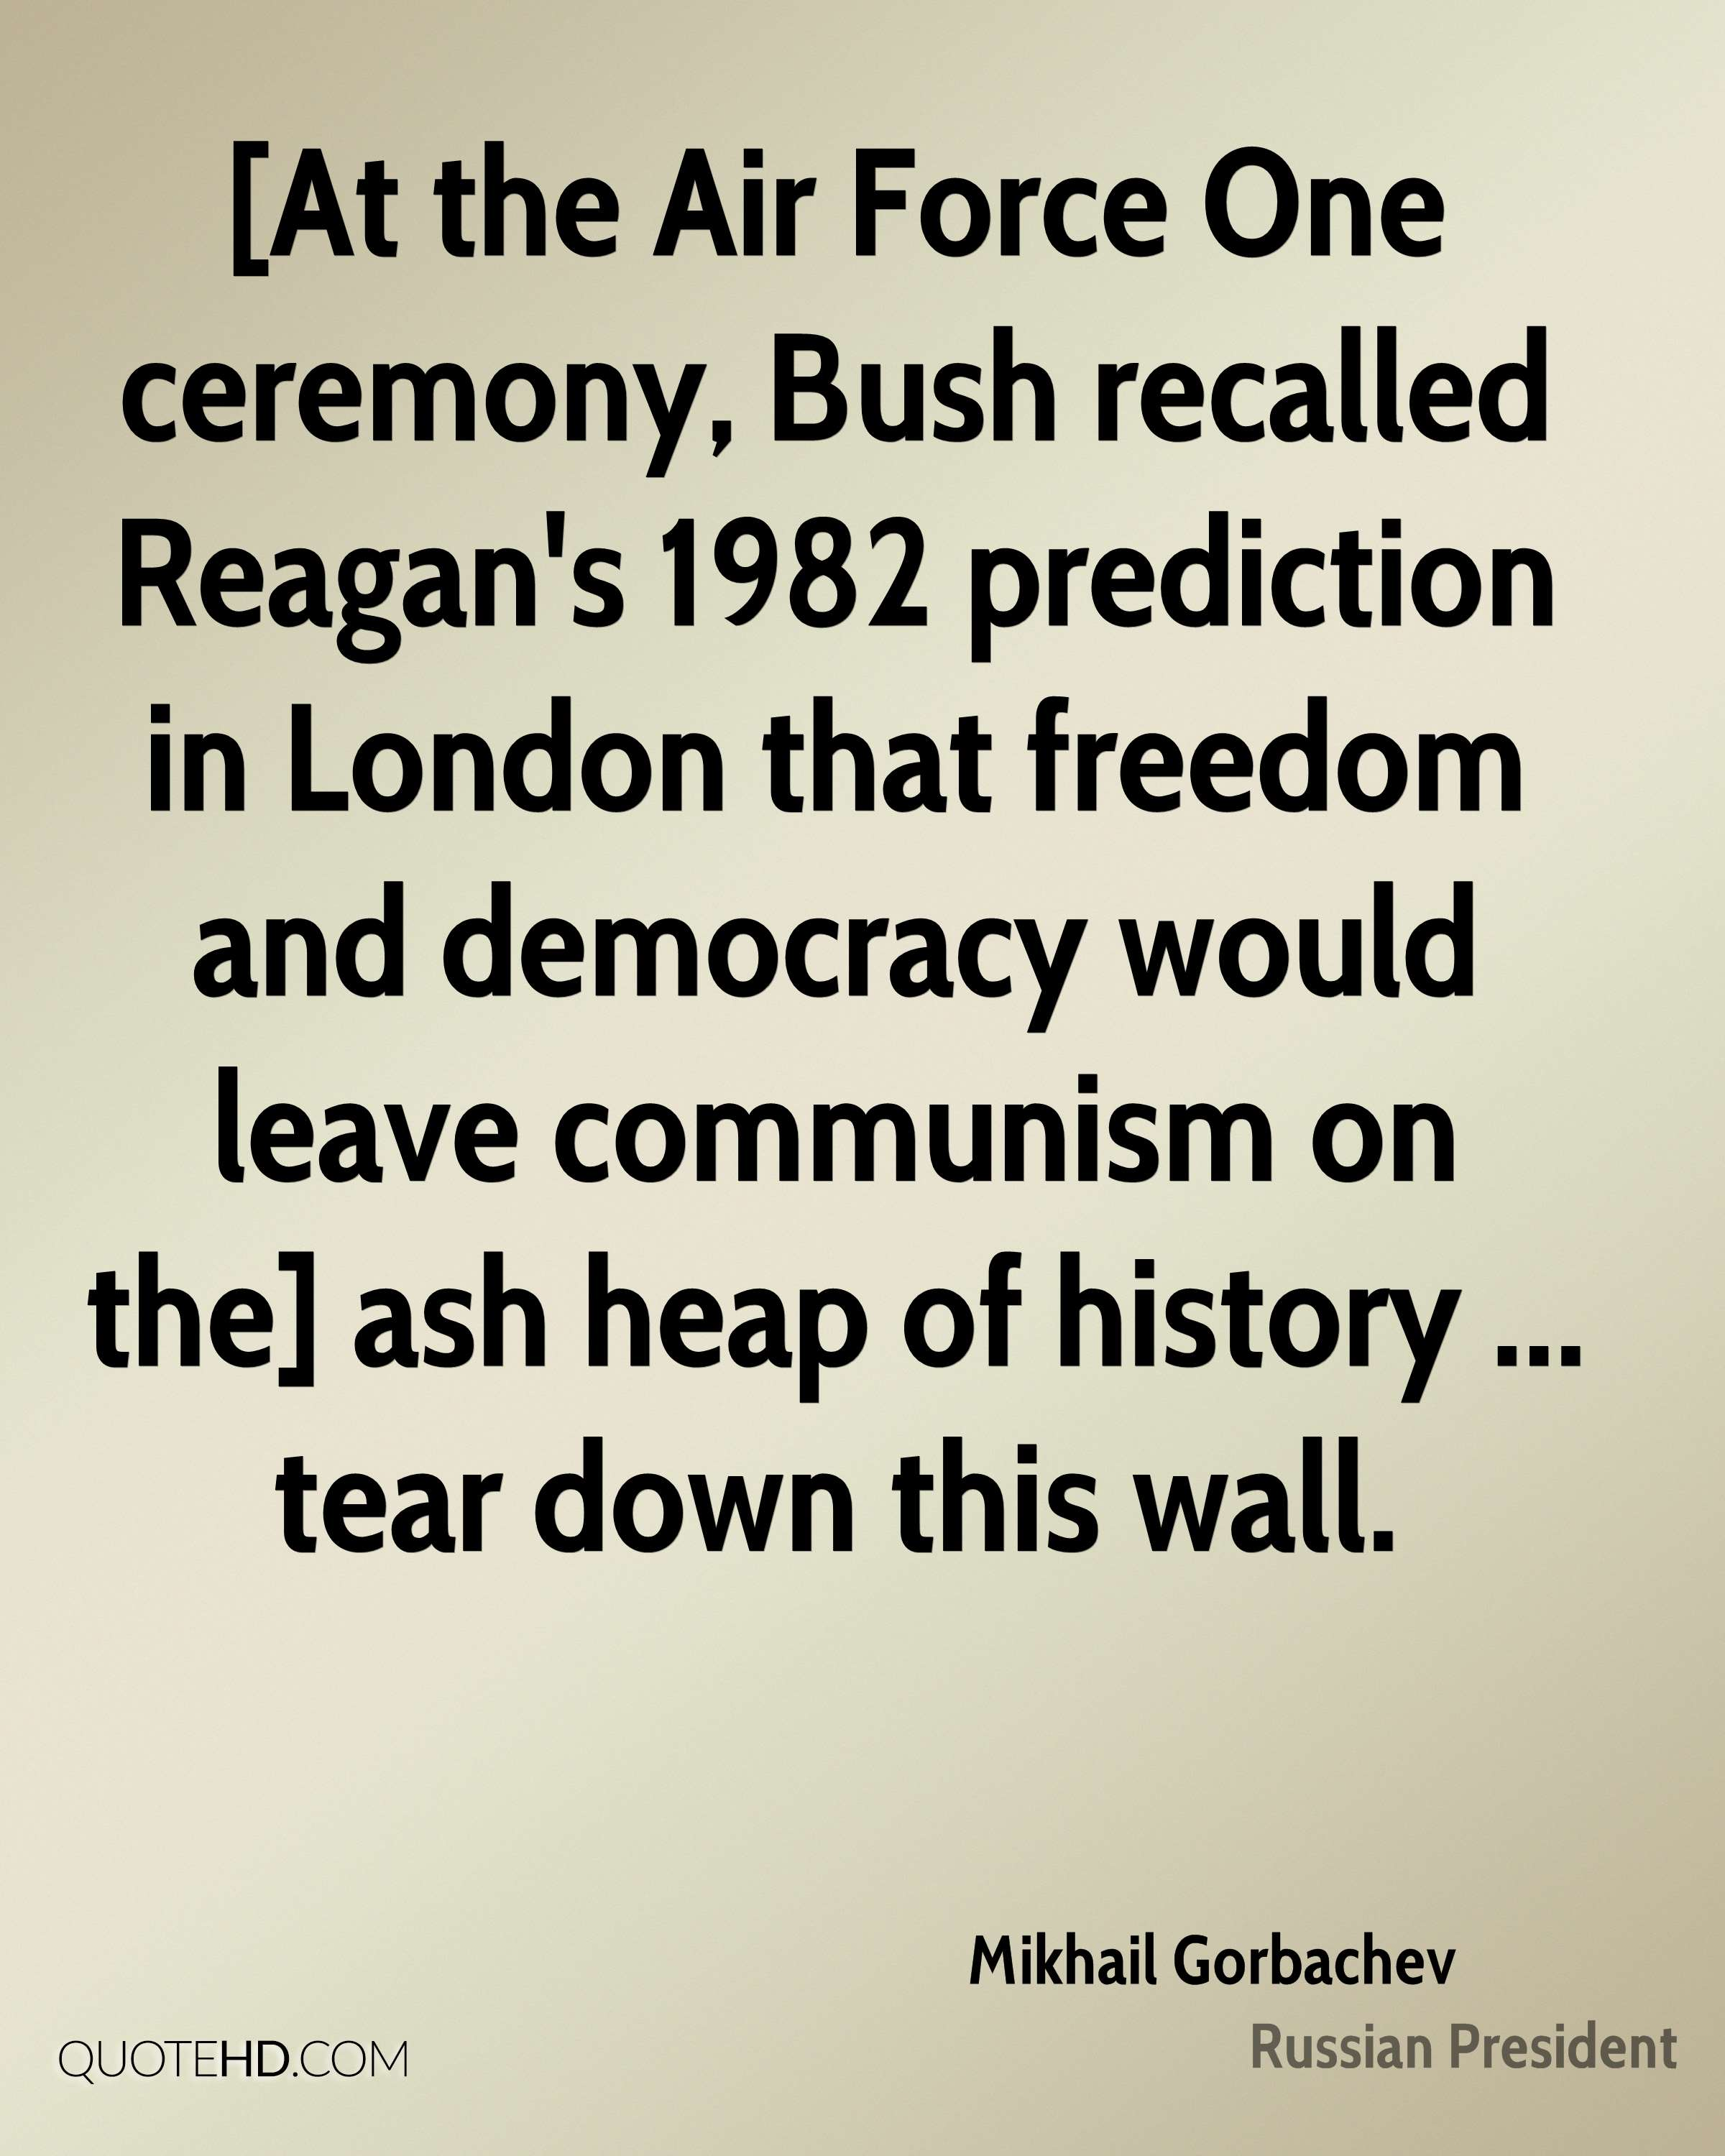 [At the Air Force One ceremony, Bush recalled Reagan's 1982 prediction in London that freedom and democracy would leave communism on the] ash heap of history ... tear down this wall.